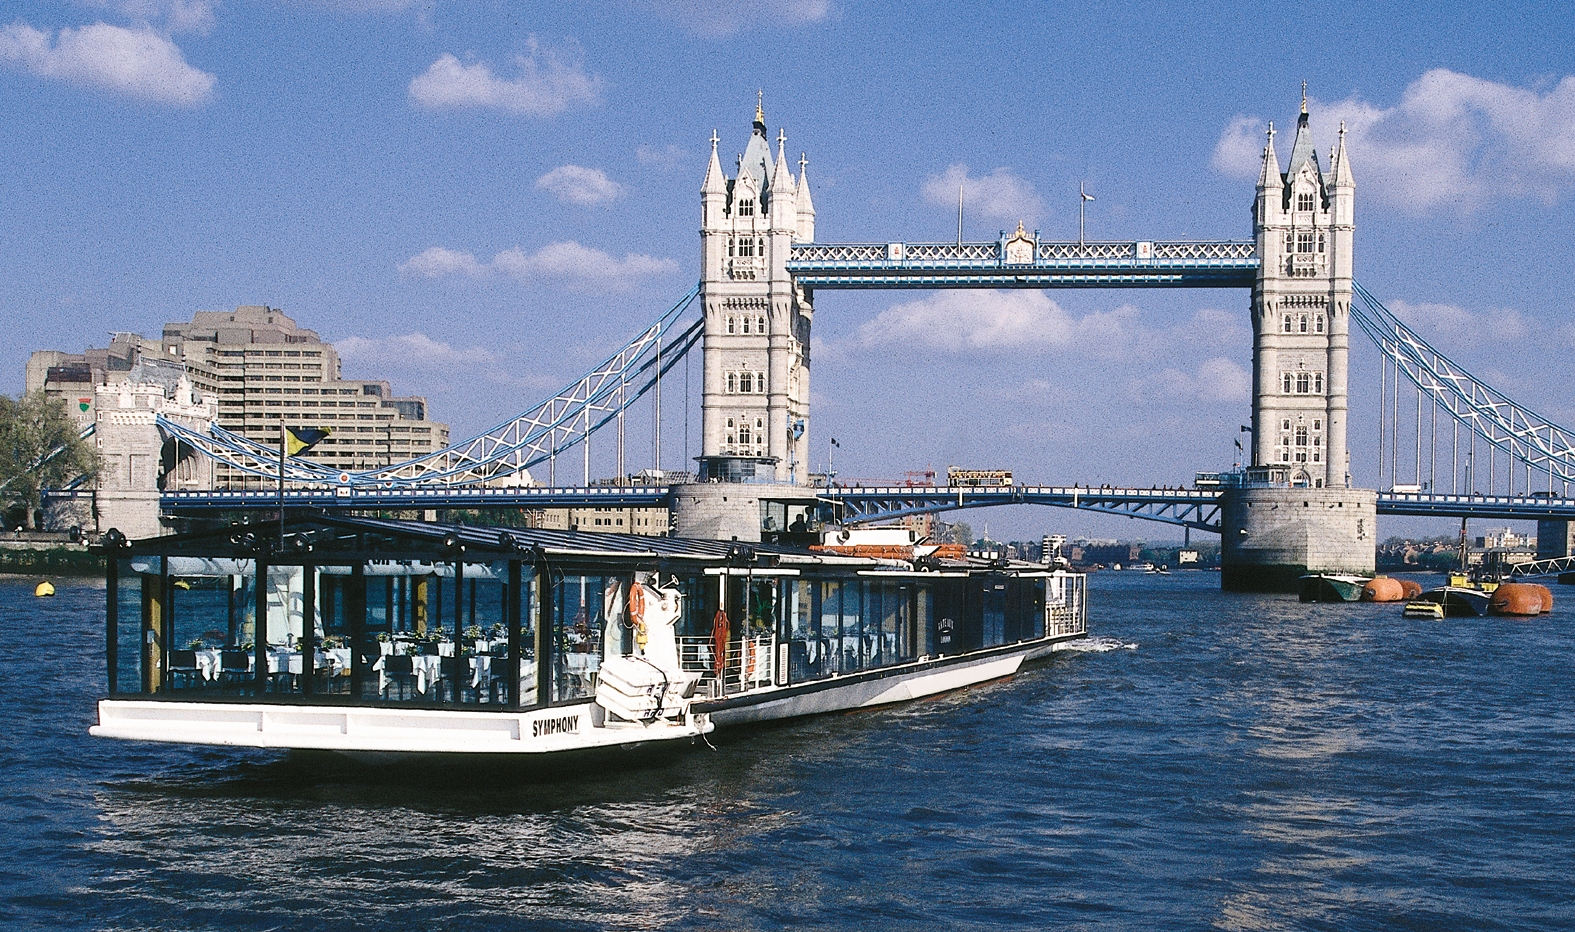 River Cruise - things to do in London